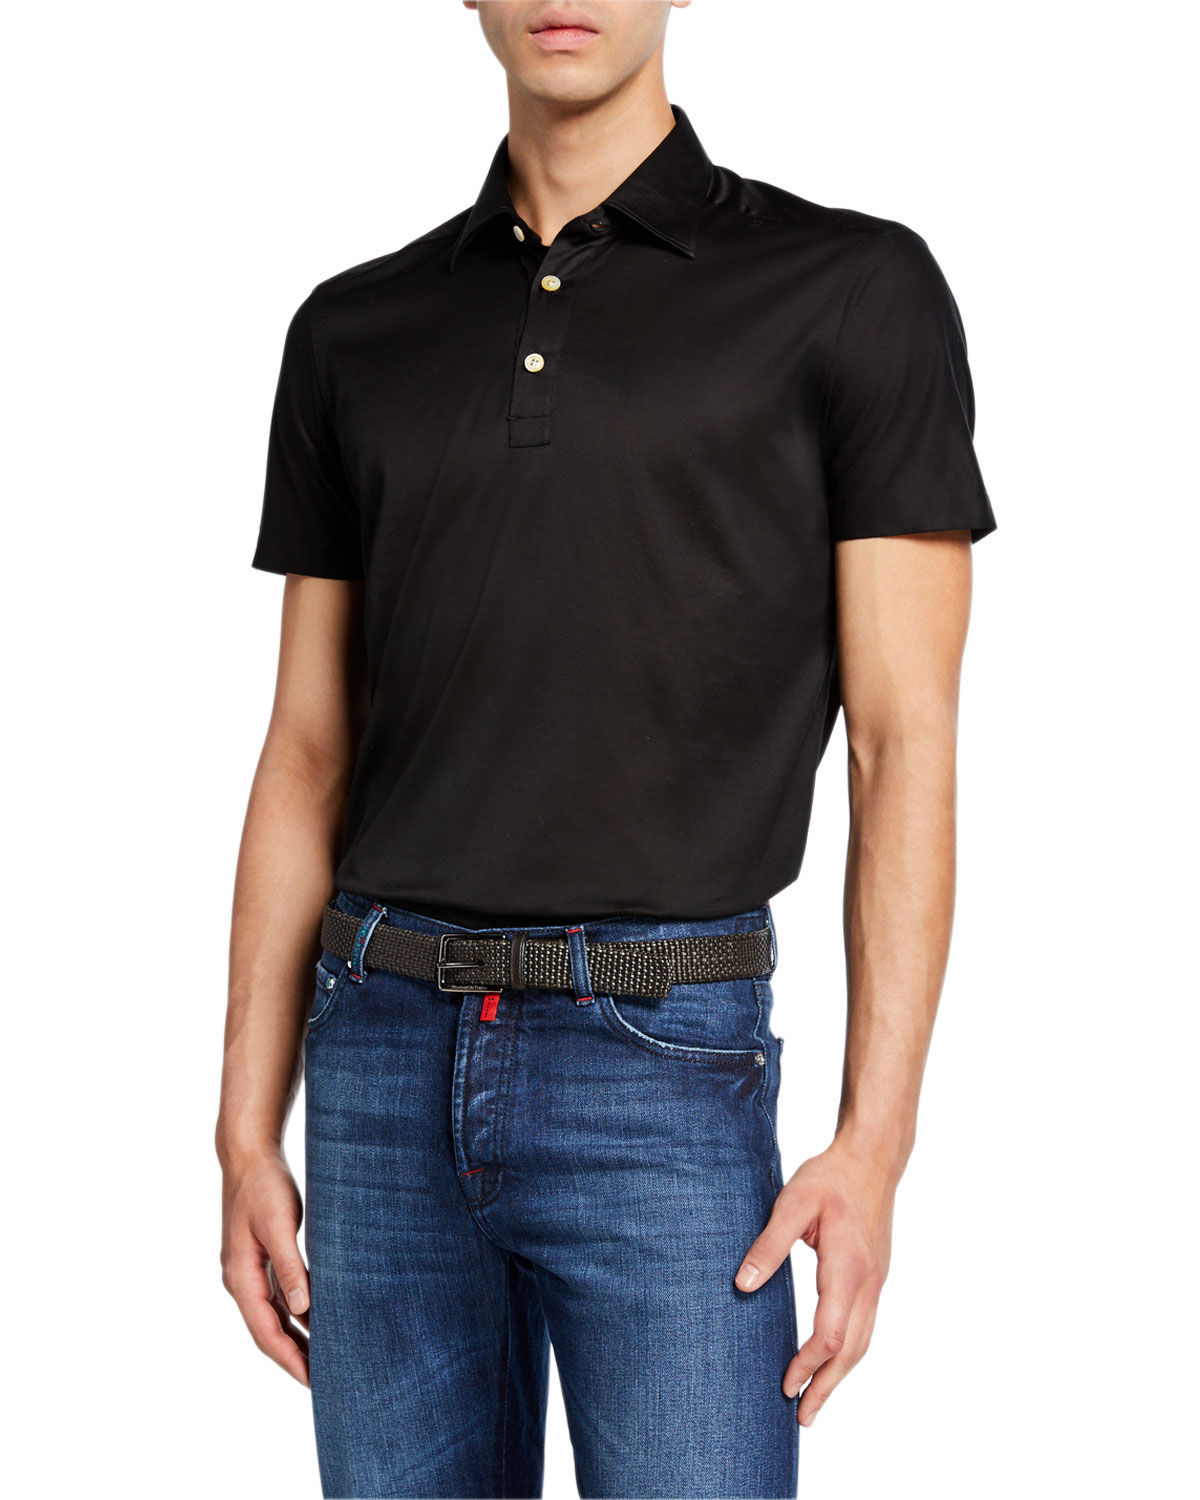 Kiton T-shirts MEN'S JERSEY COTTON POLO SHIRT, BLACK